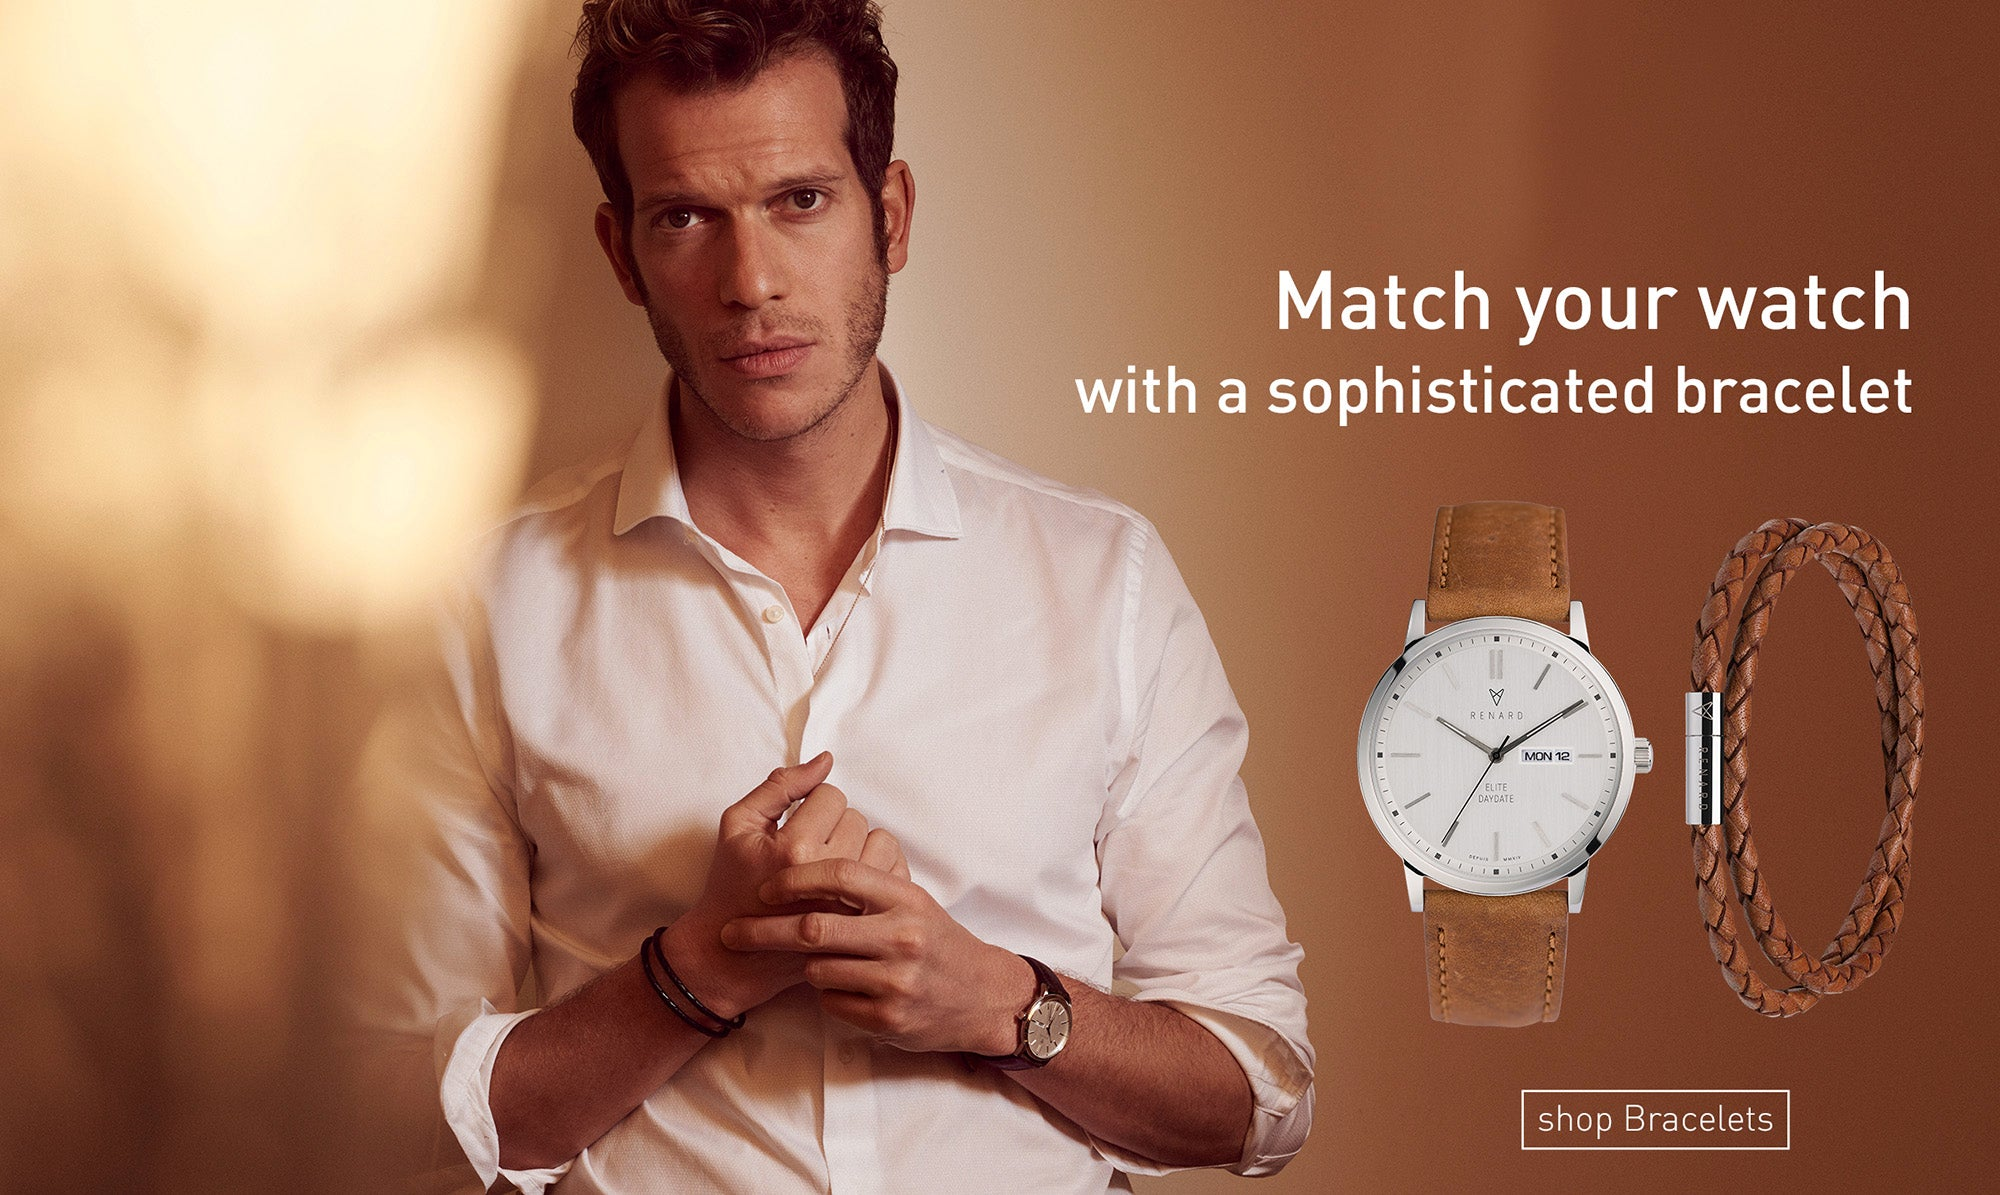 Match your watch